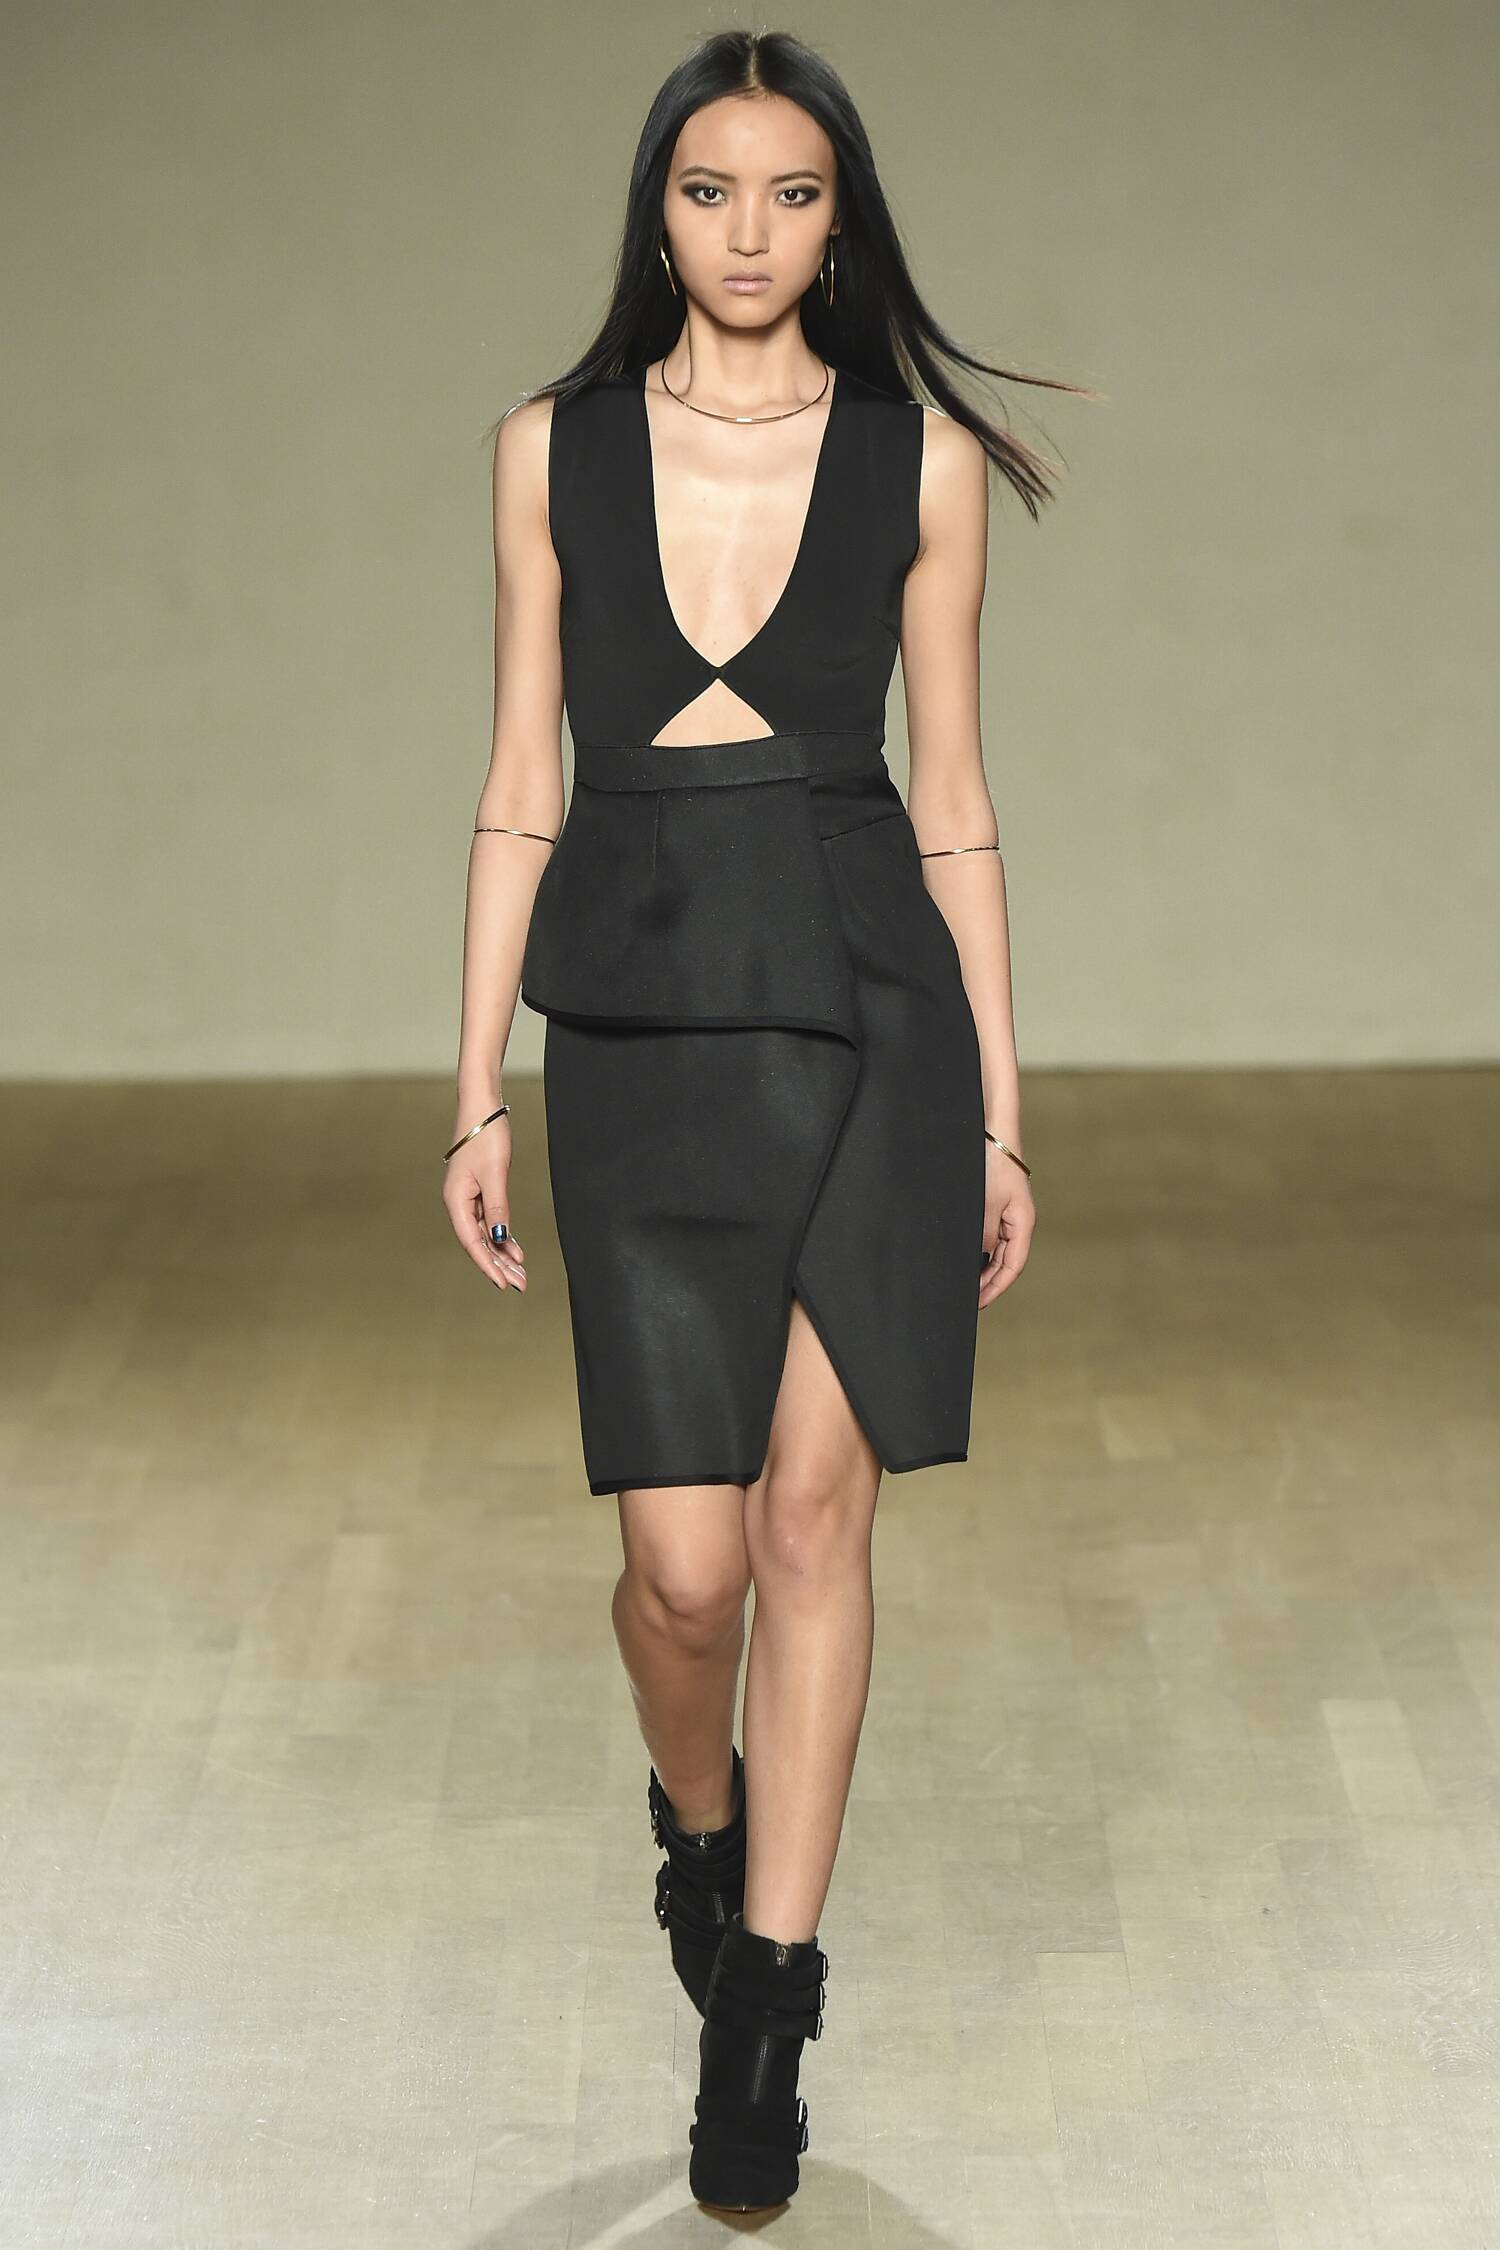 Issa Fall Winter 2015 16 Women's Collection London Fashion Week Fashion Show